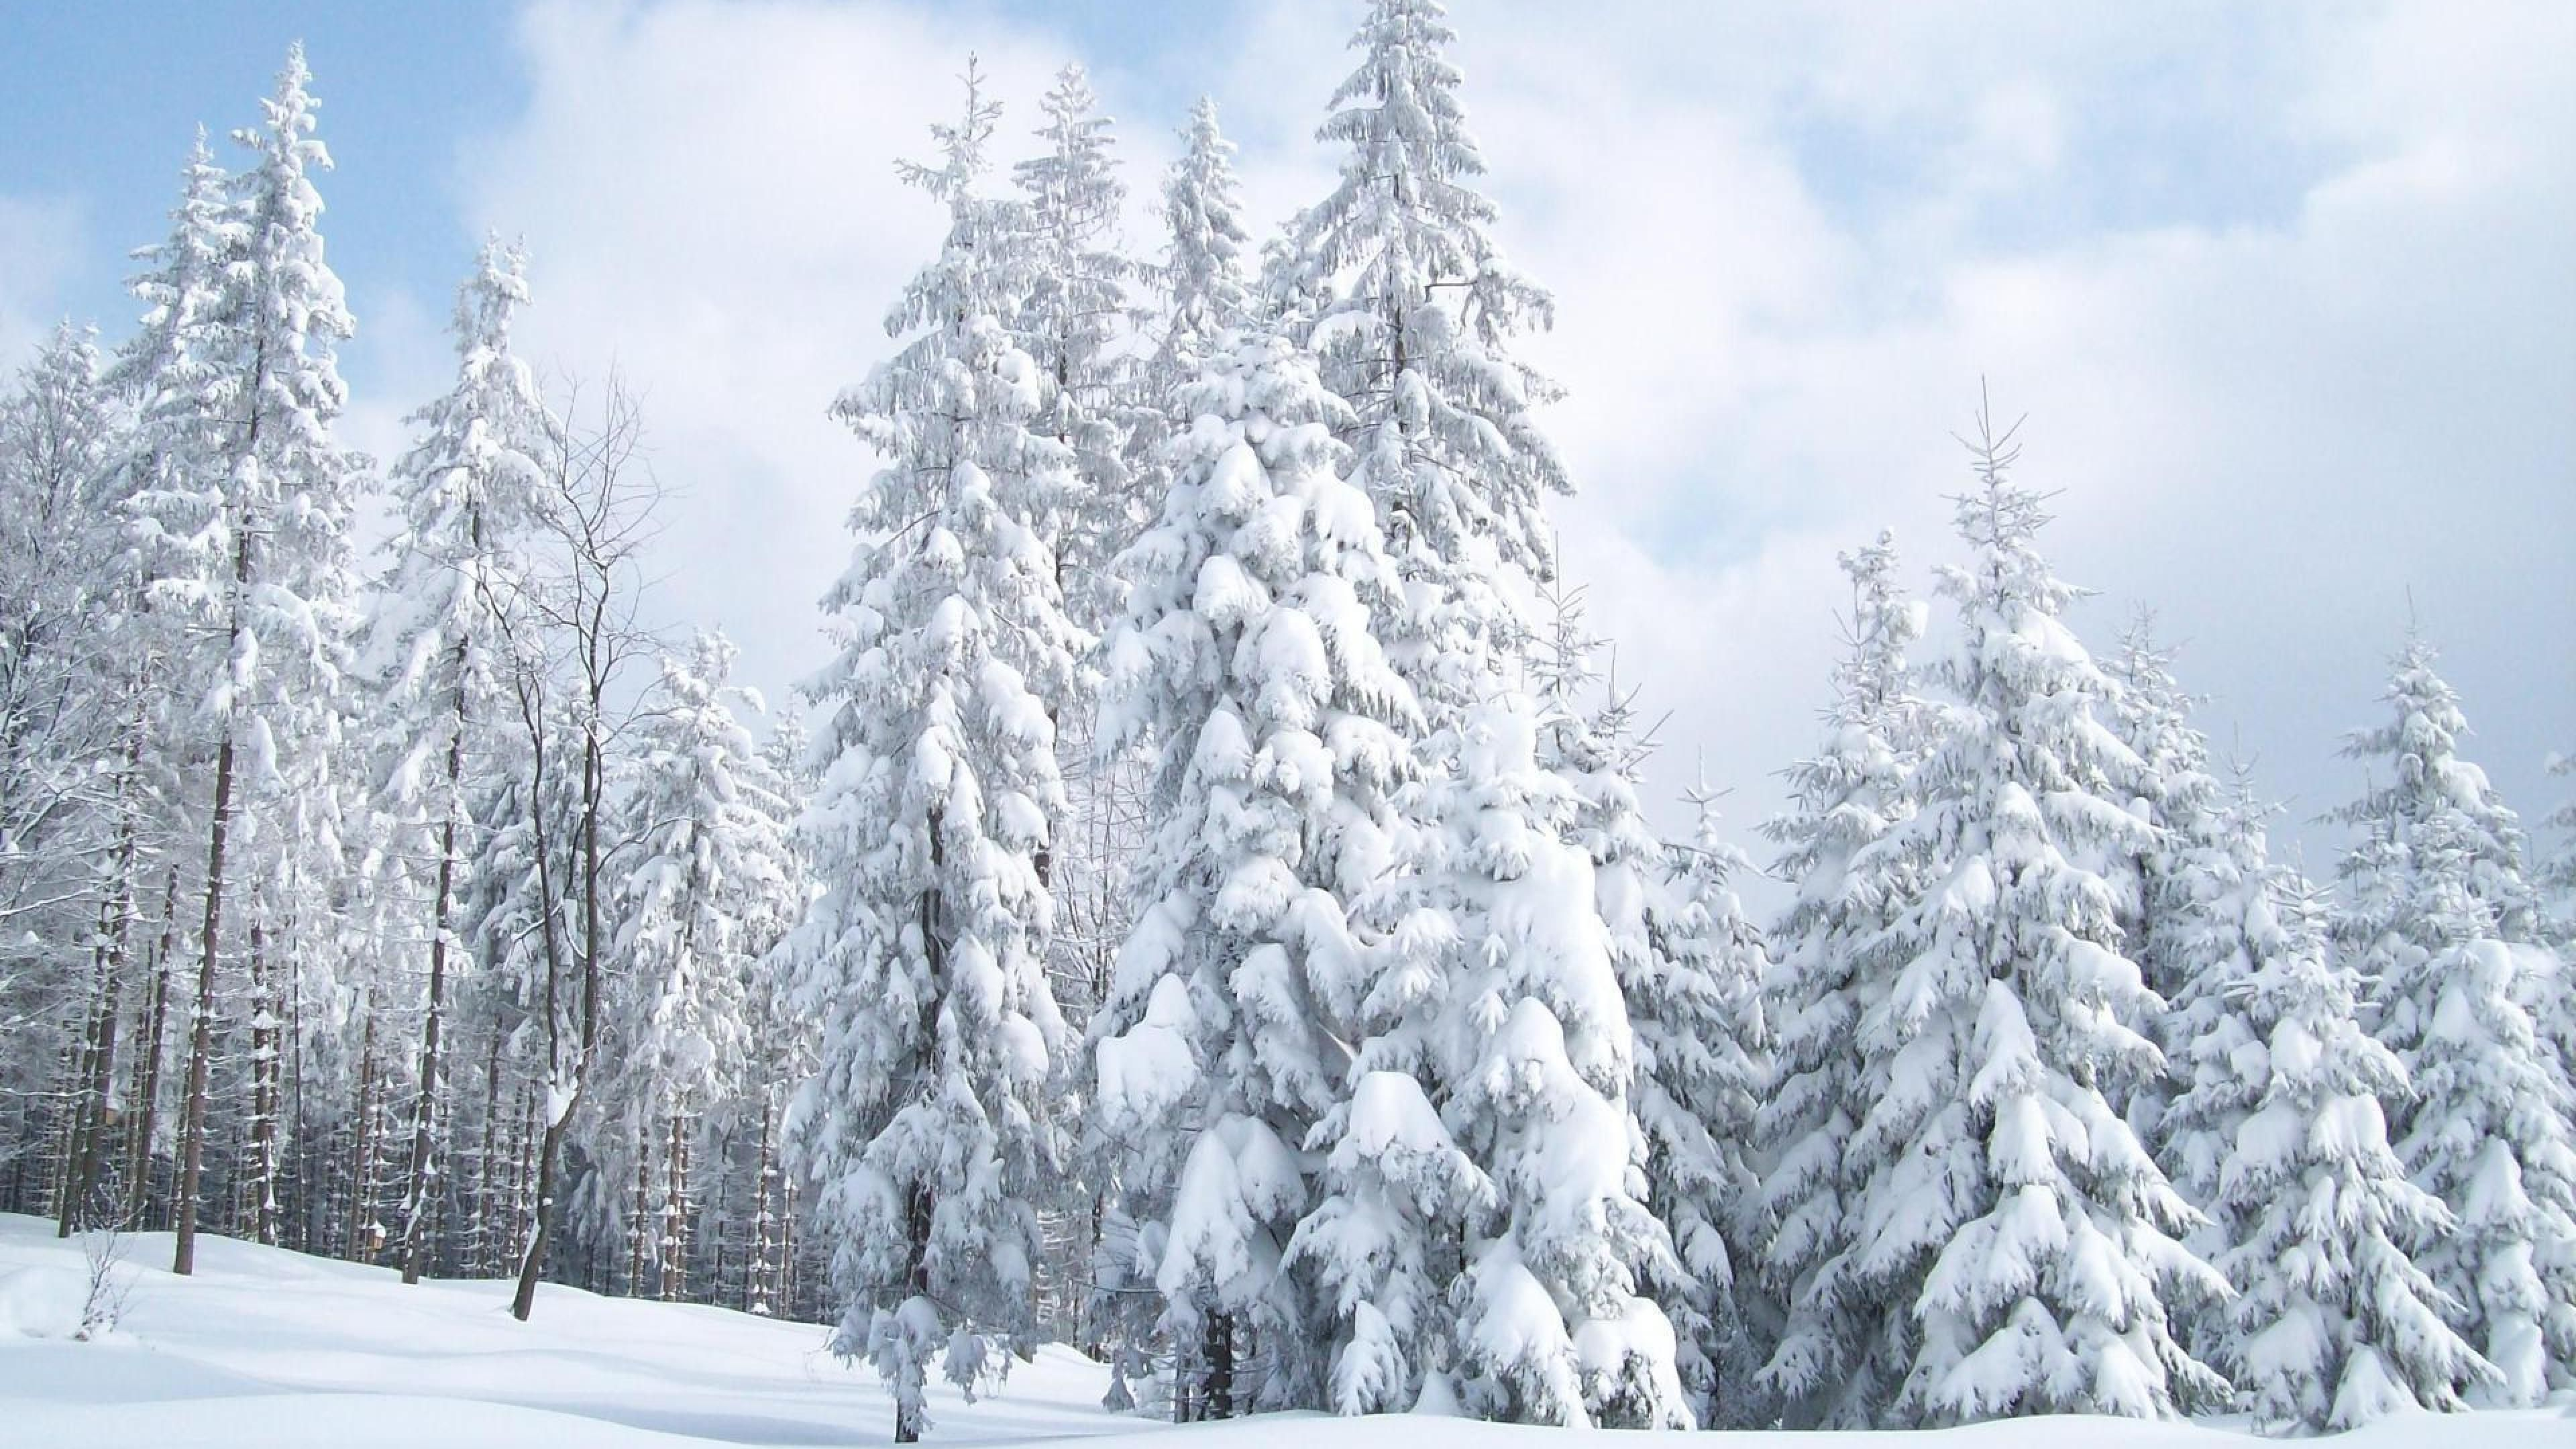 Snow On Fir Trees Wallpaper Winter Landscape Snow Images Winter Pictures